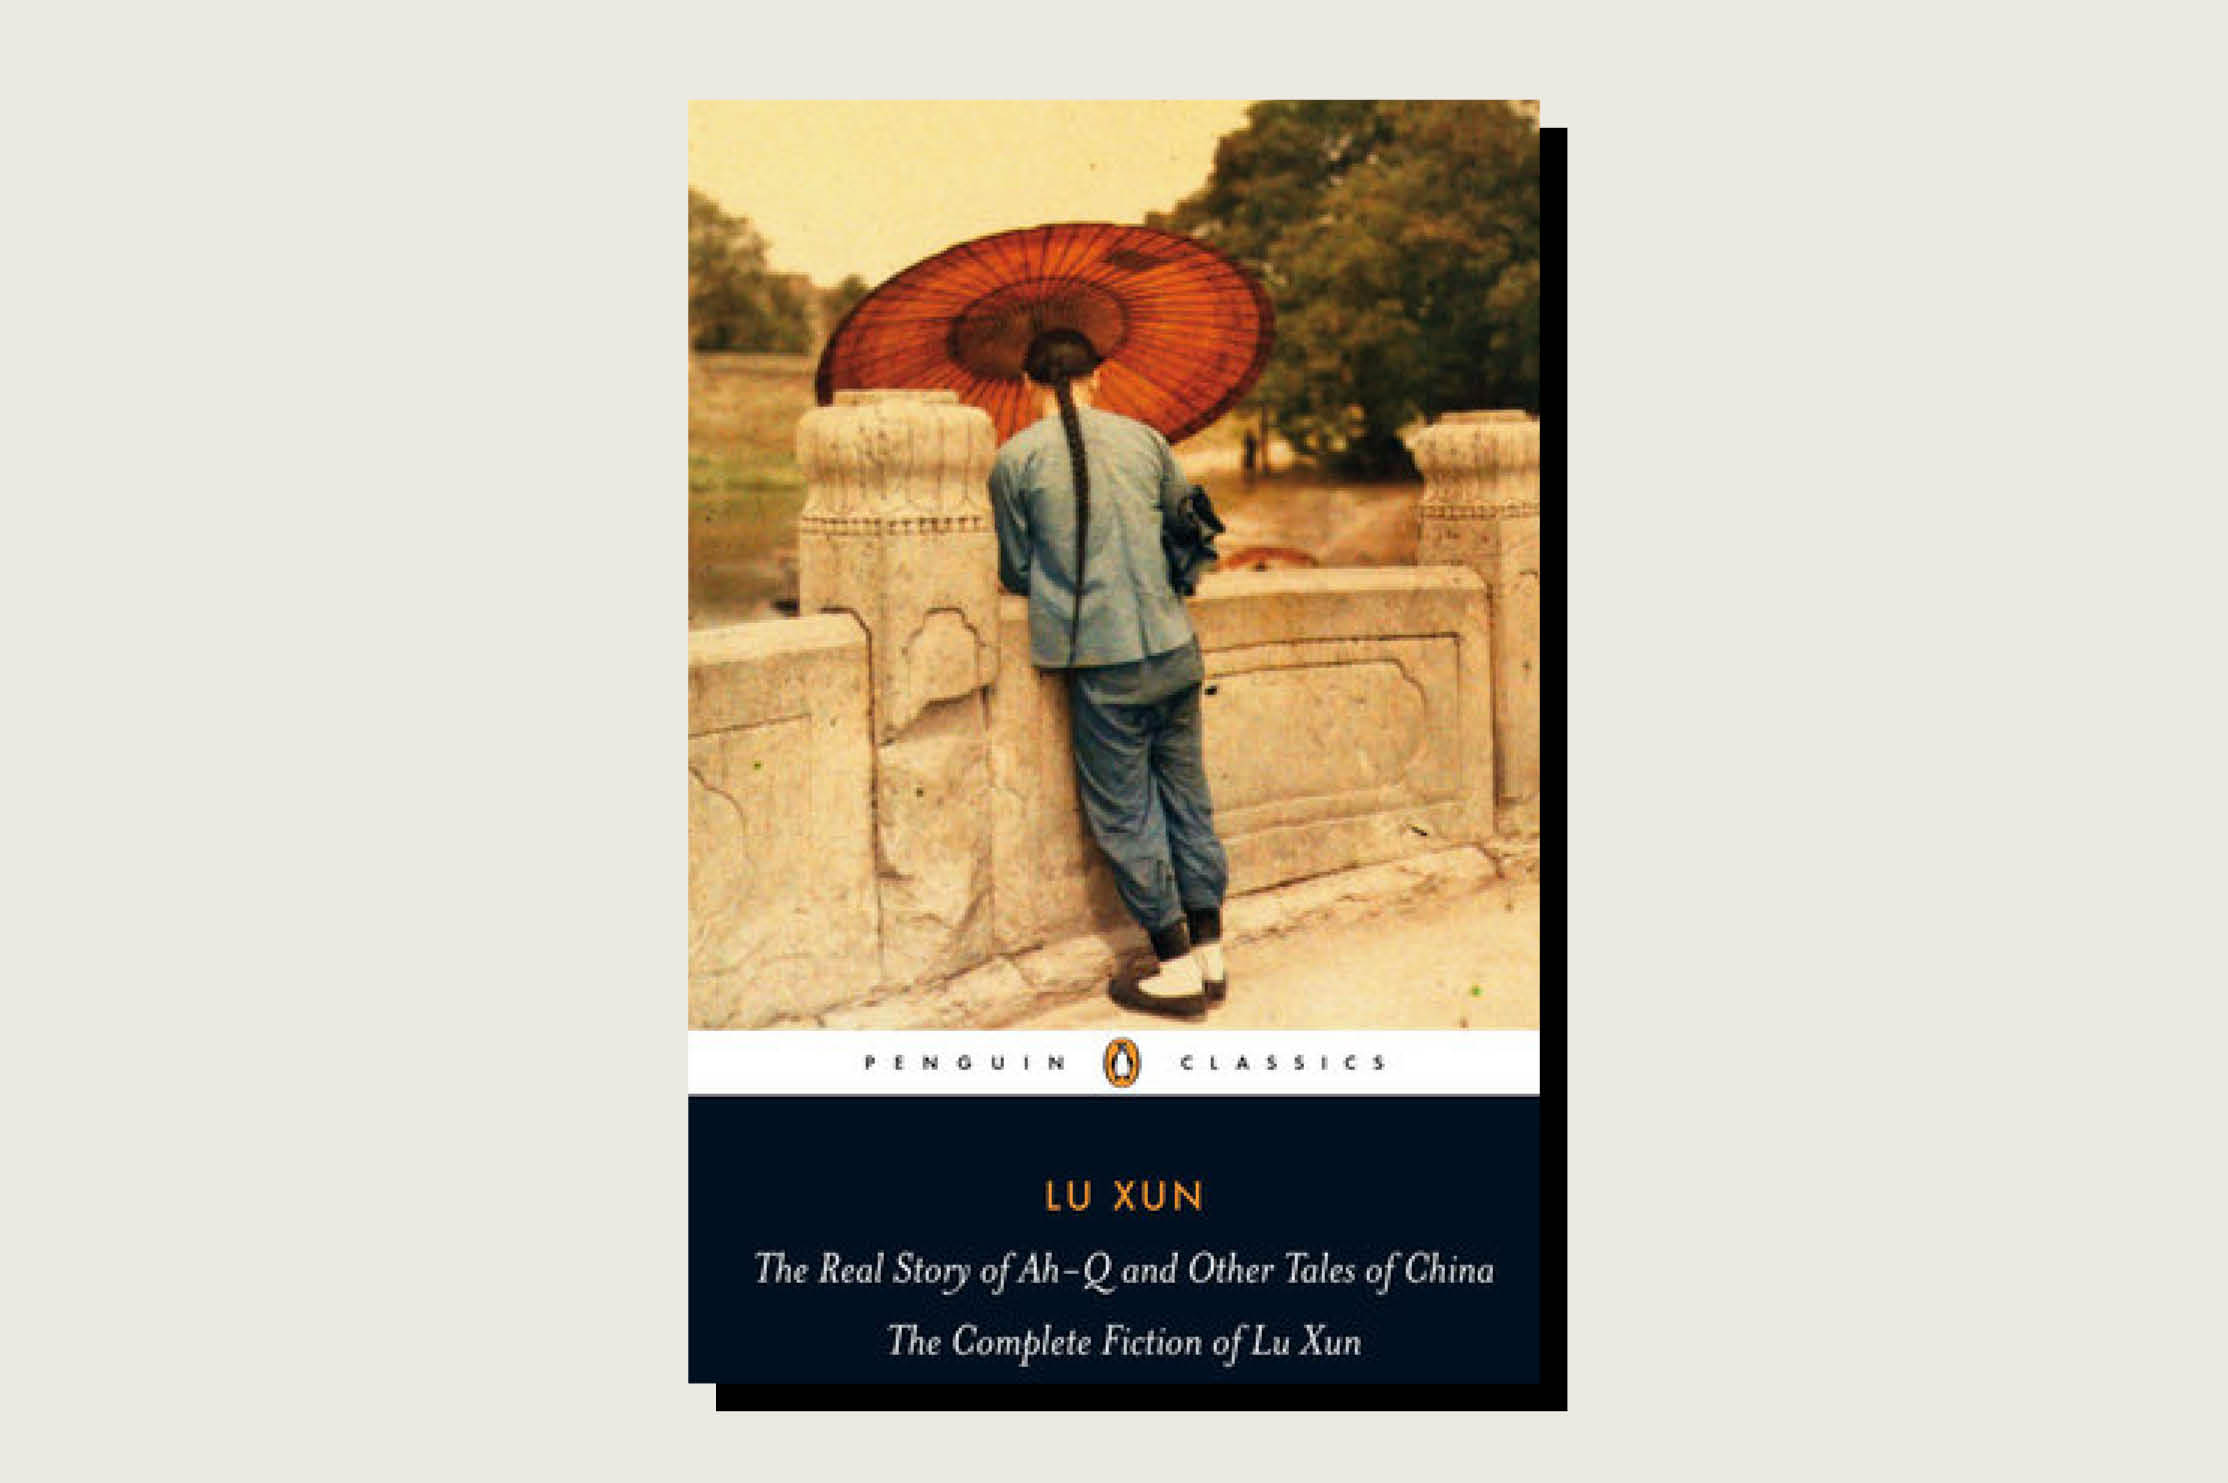 The Real Story of Ah-Q and Other Tales of China: The Complete Fiction of Lu Xun, Lu Xun, trans. Julia Lovell, Penguin, 461 pp., 2009.